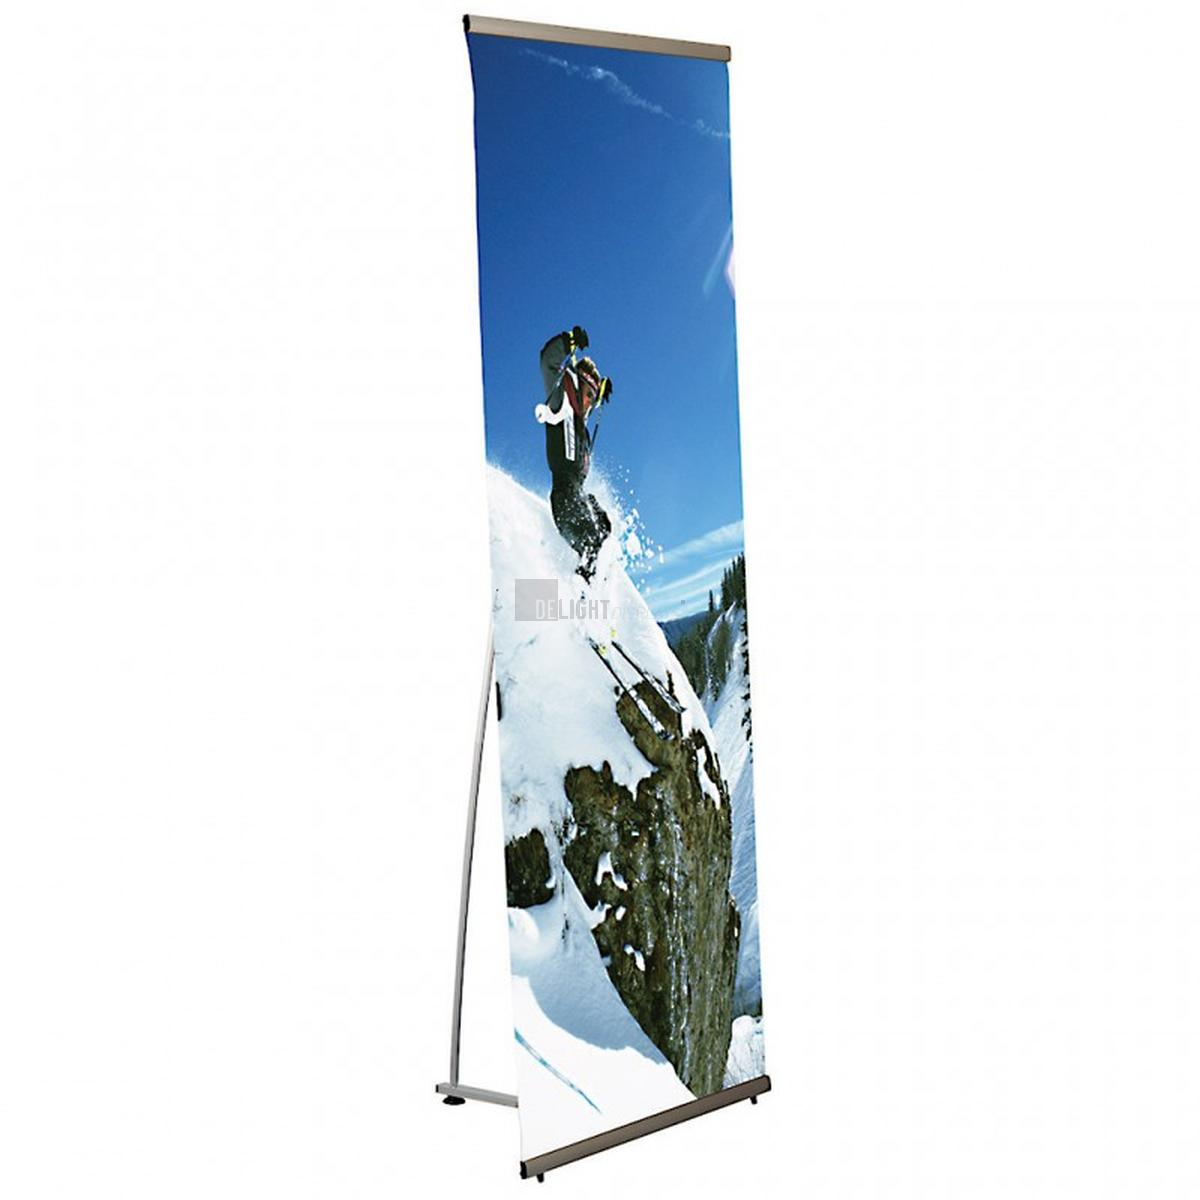 L-Banner Display Snapy 800 x 2000